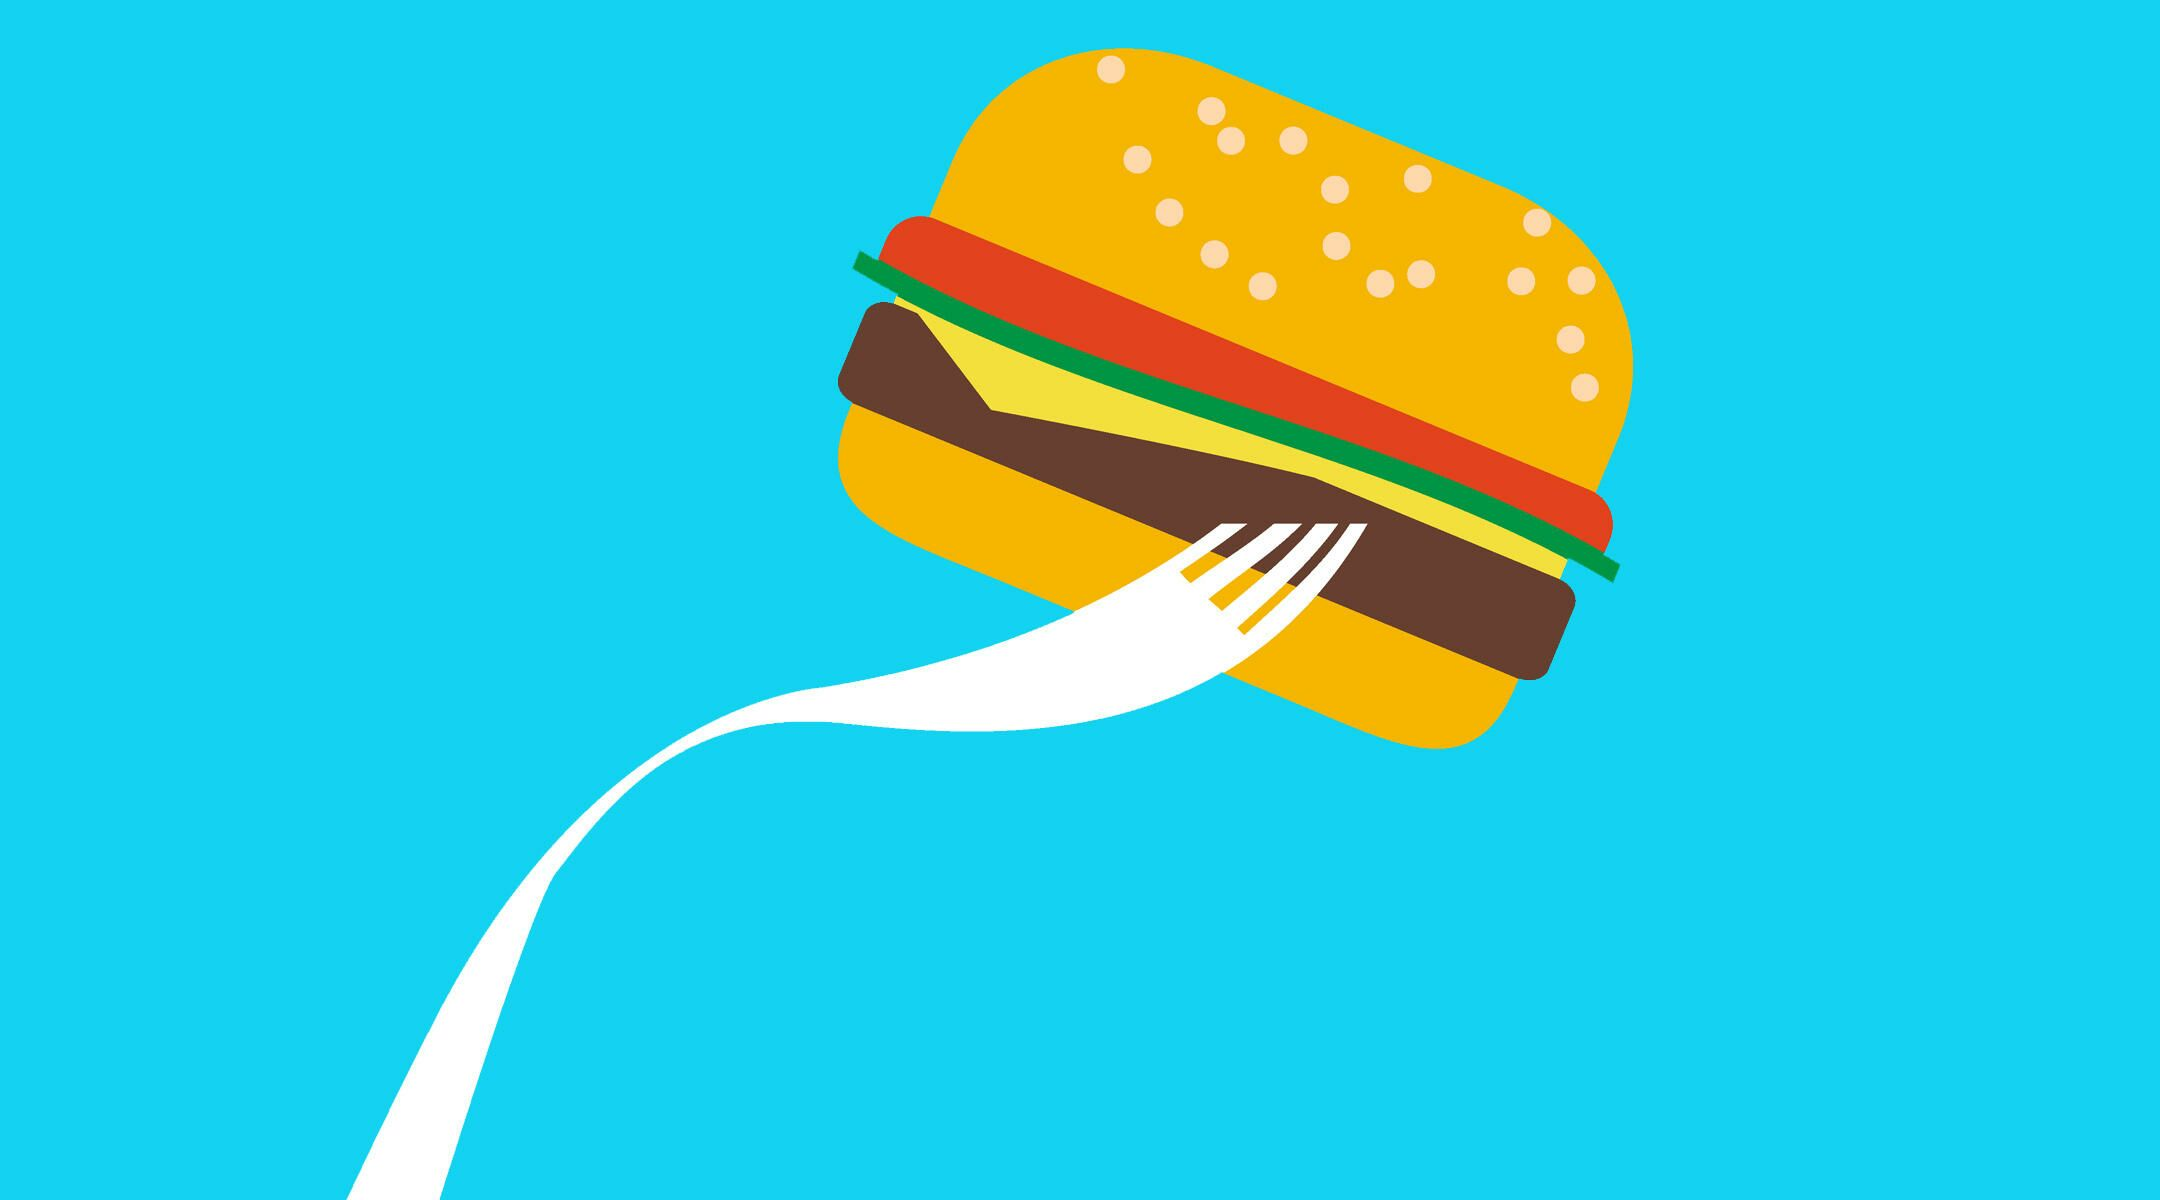 Unhealthy Diet During Pregnancy Could >> How Eating Junk Food During Pregnancy Affects Baby